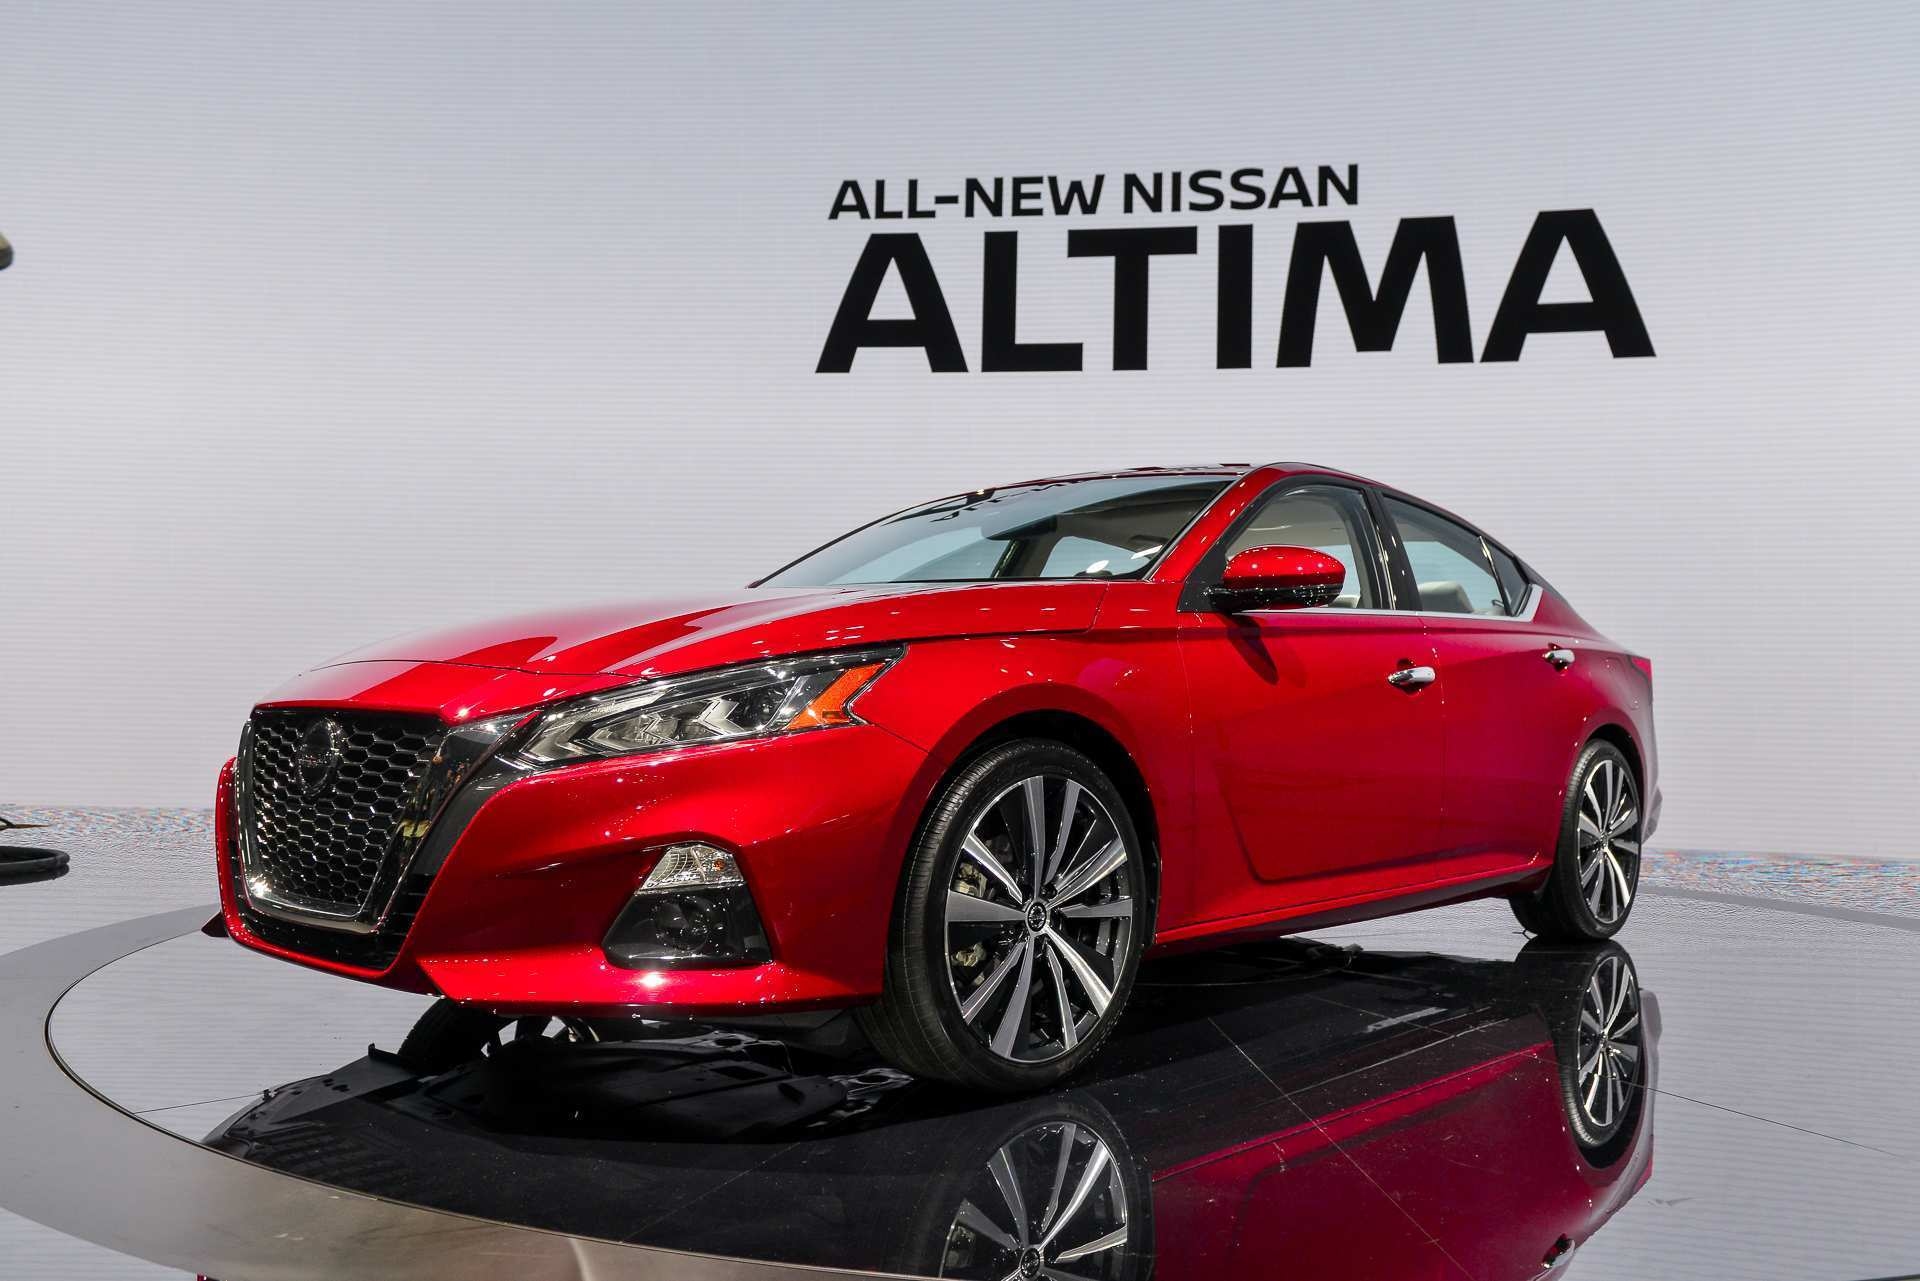 71 All New 2019 Nissan Altima News Interior by 2019 Nissan Altima News